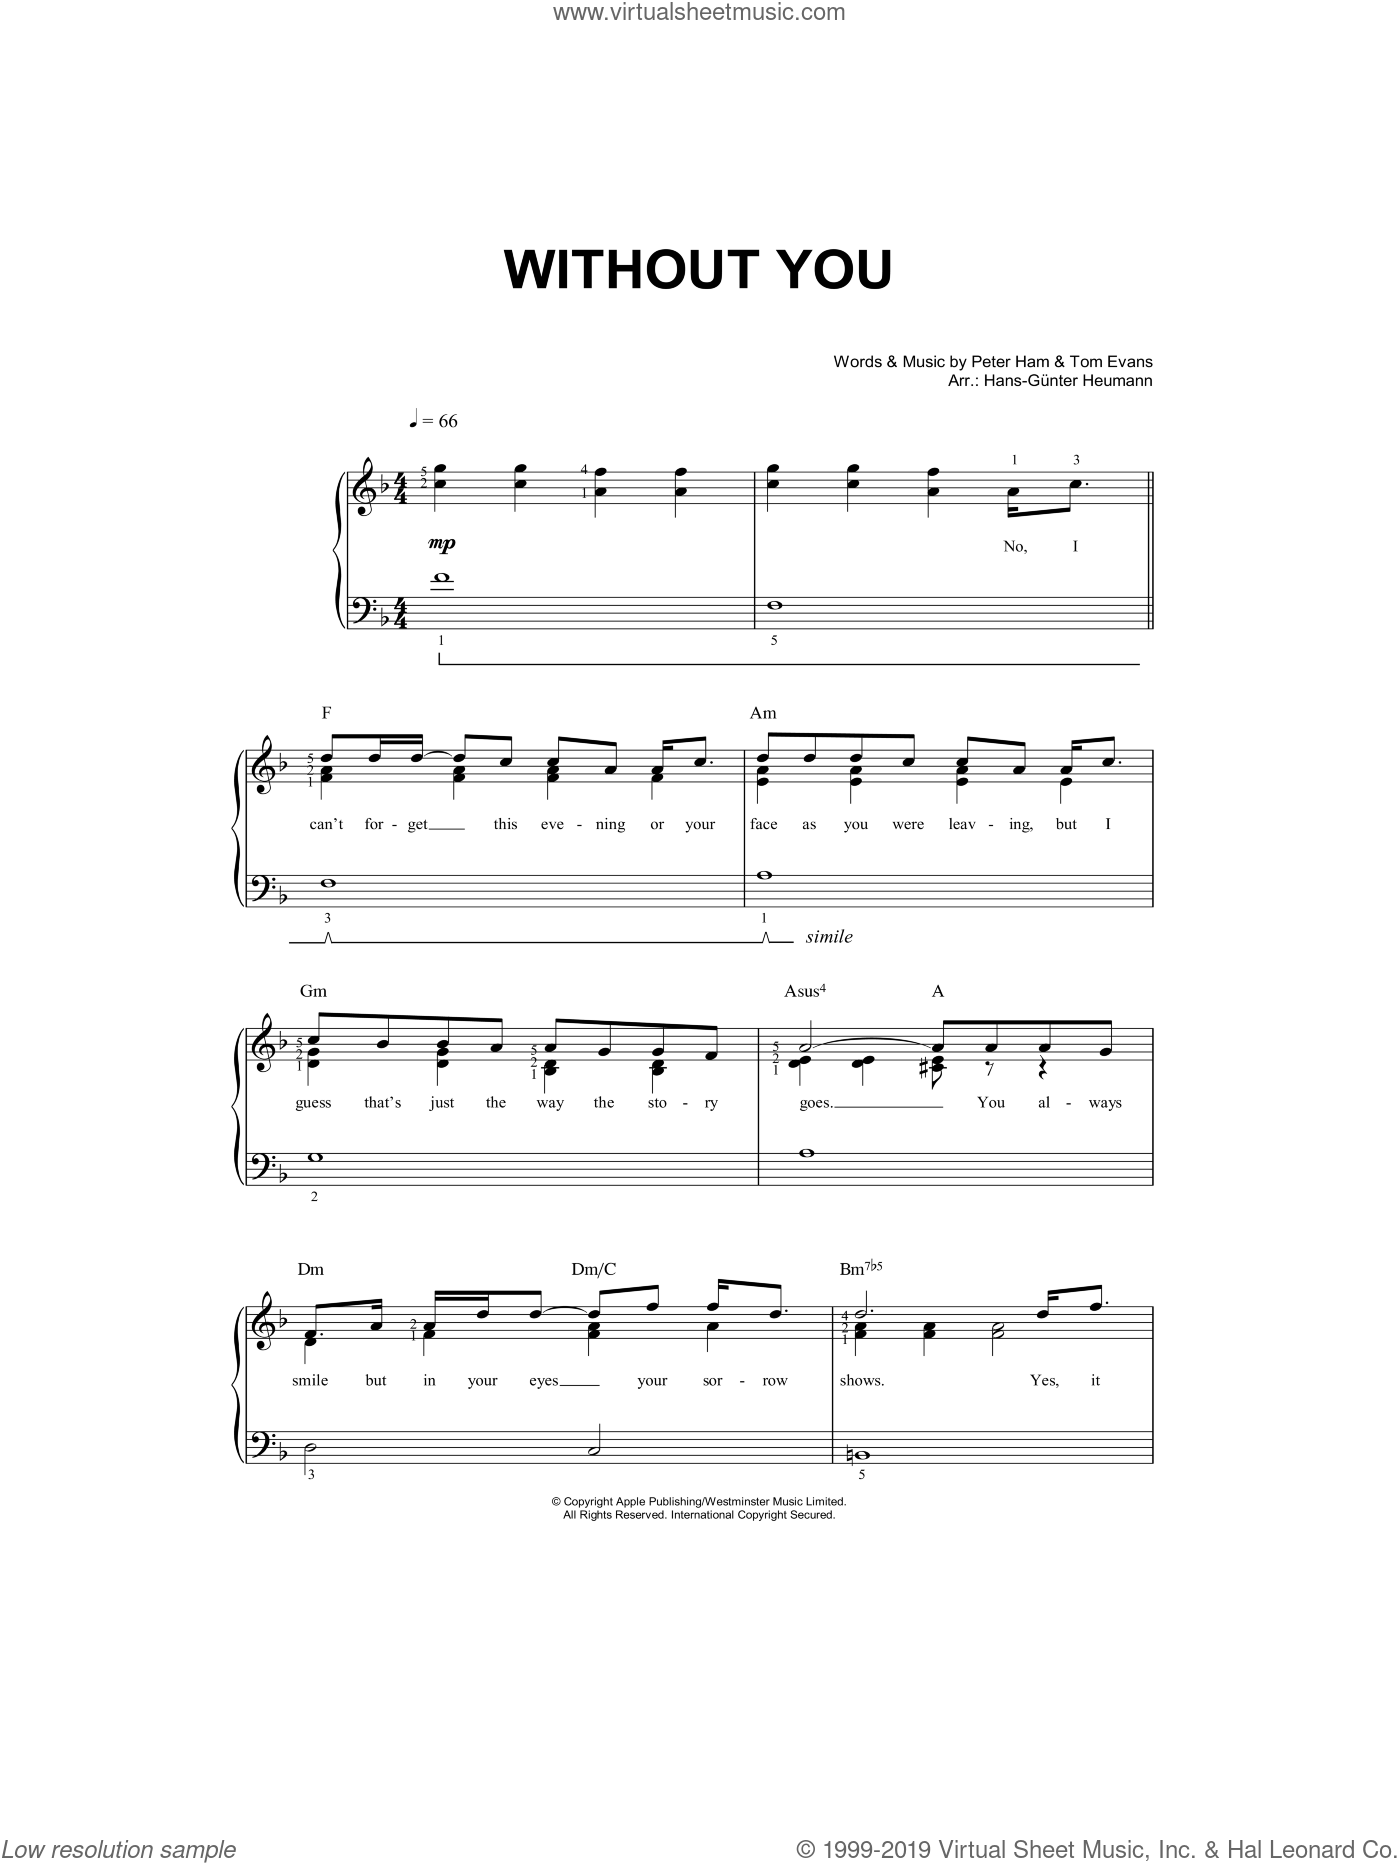 Without You sheet music for piano solo by Pete Ham, Hans-Gunter Heumann, Mariah Carey and Tom Evans. Score Image Preview.